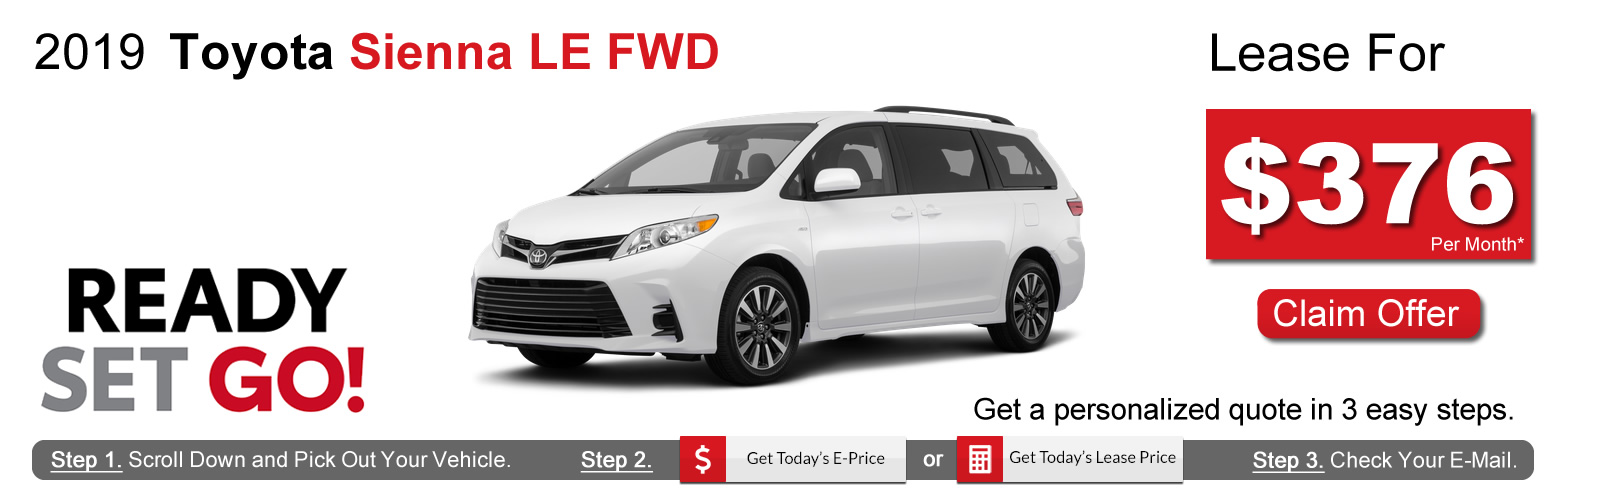 2019 Toyota Sienna Lease Deals near Boston, MA